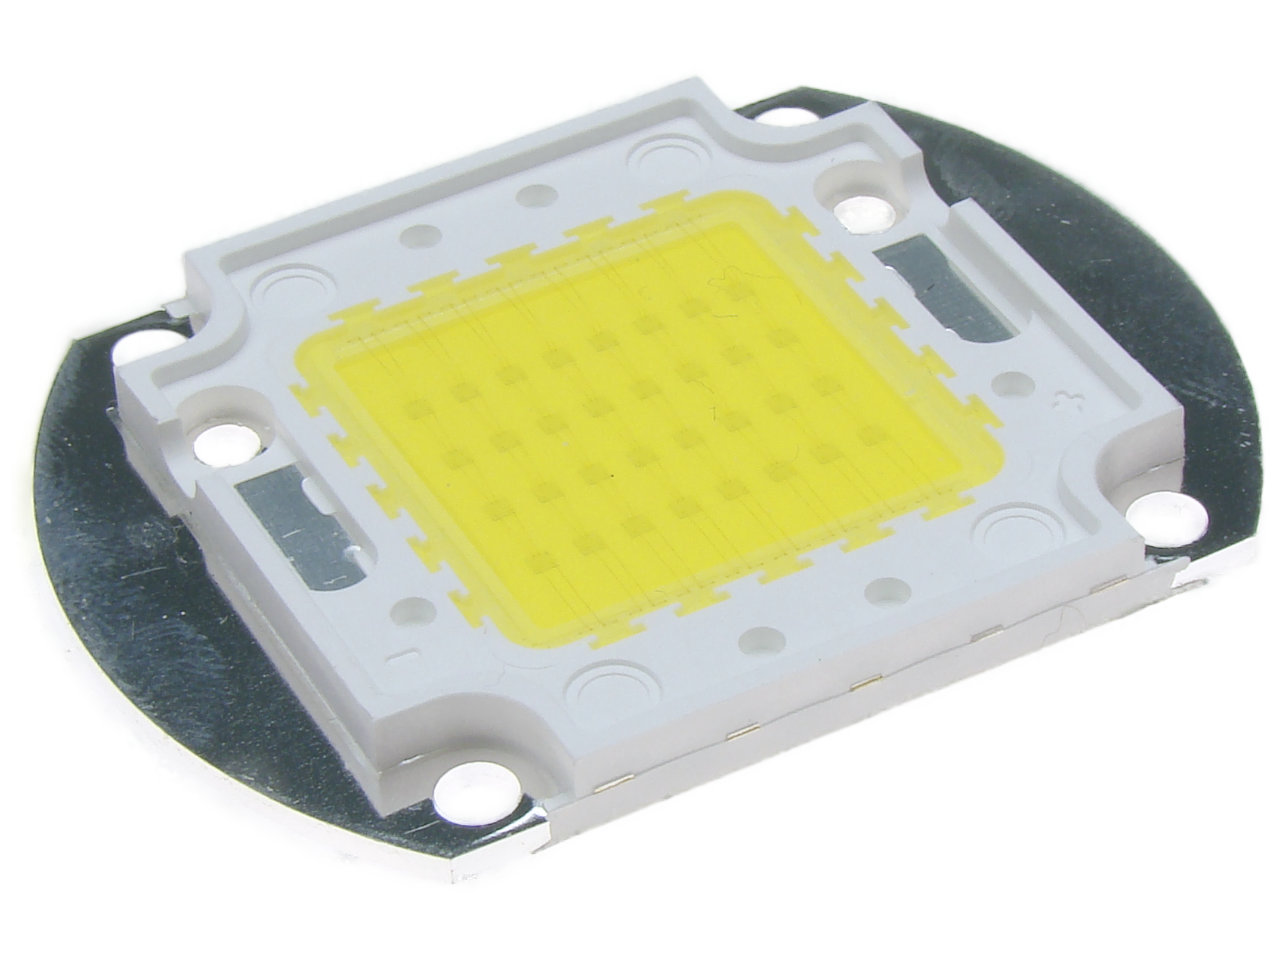 Dioda LED 30W EL-MZ550408 VF:12-13V IF:2500mA;5000-5500K;3500-4000lm